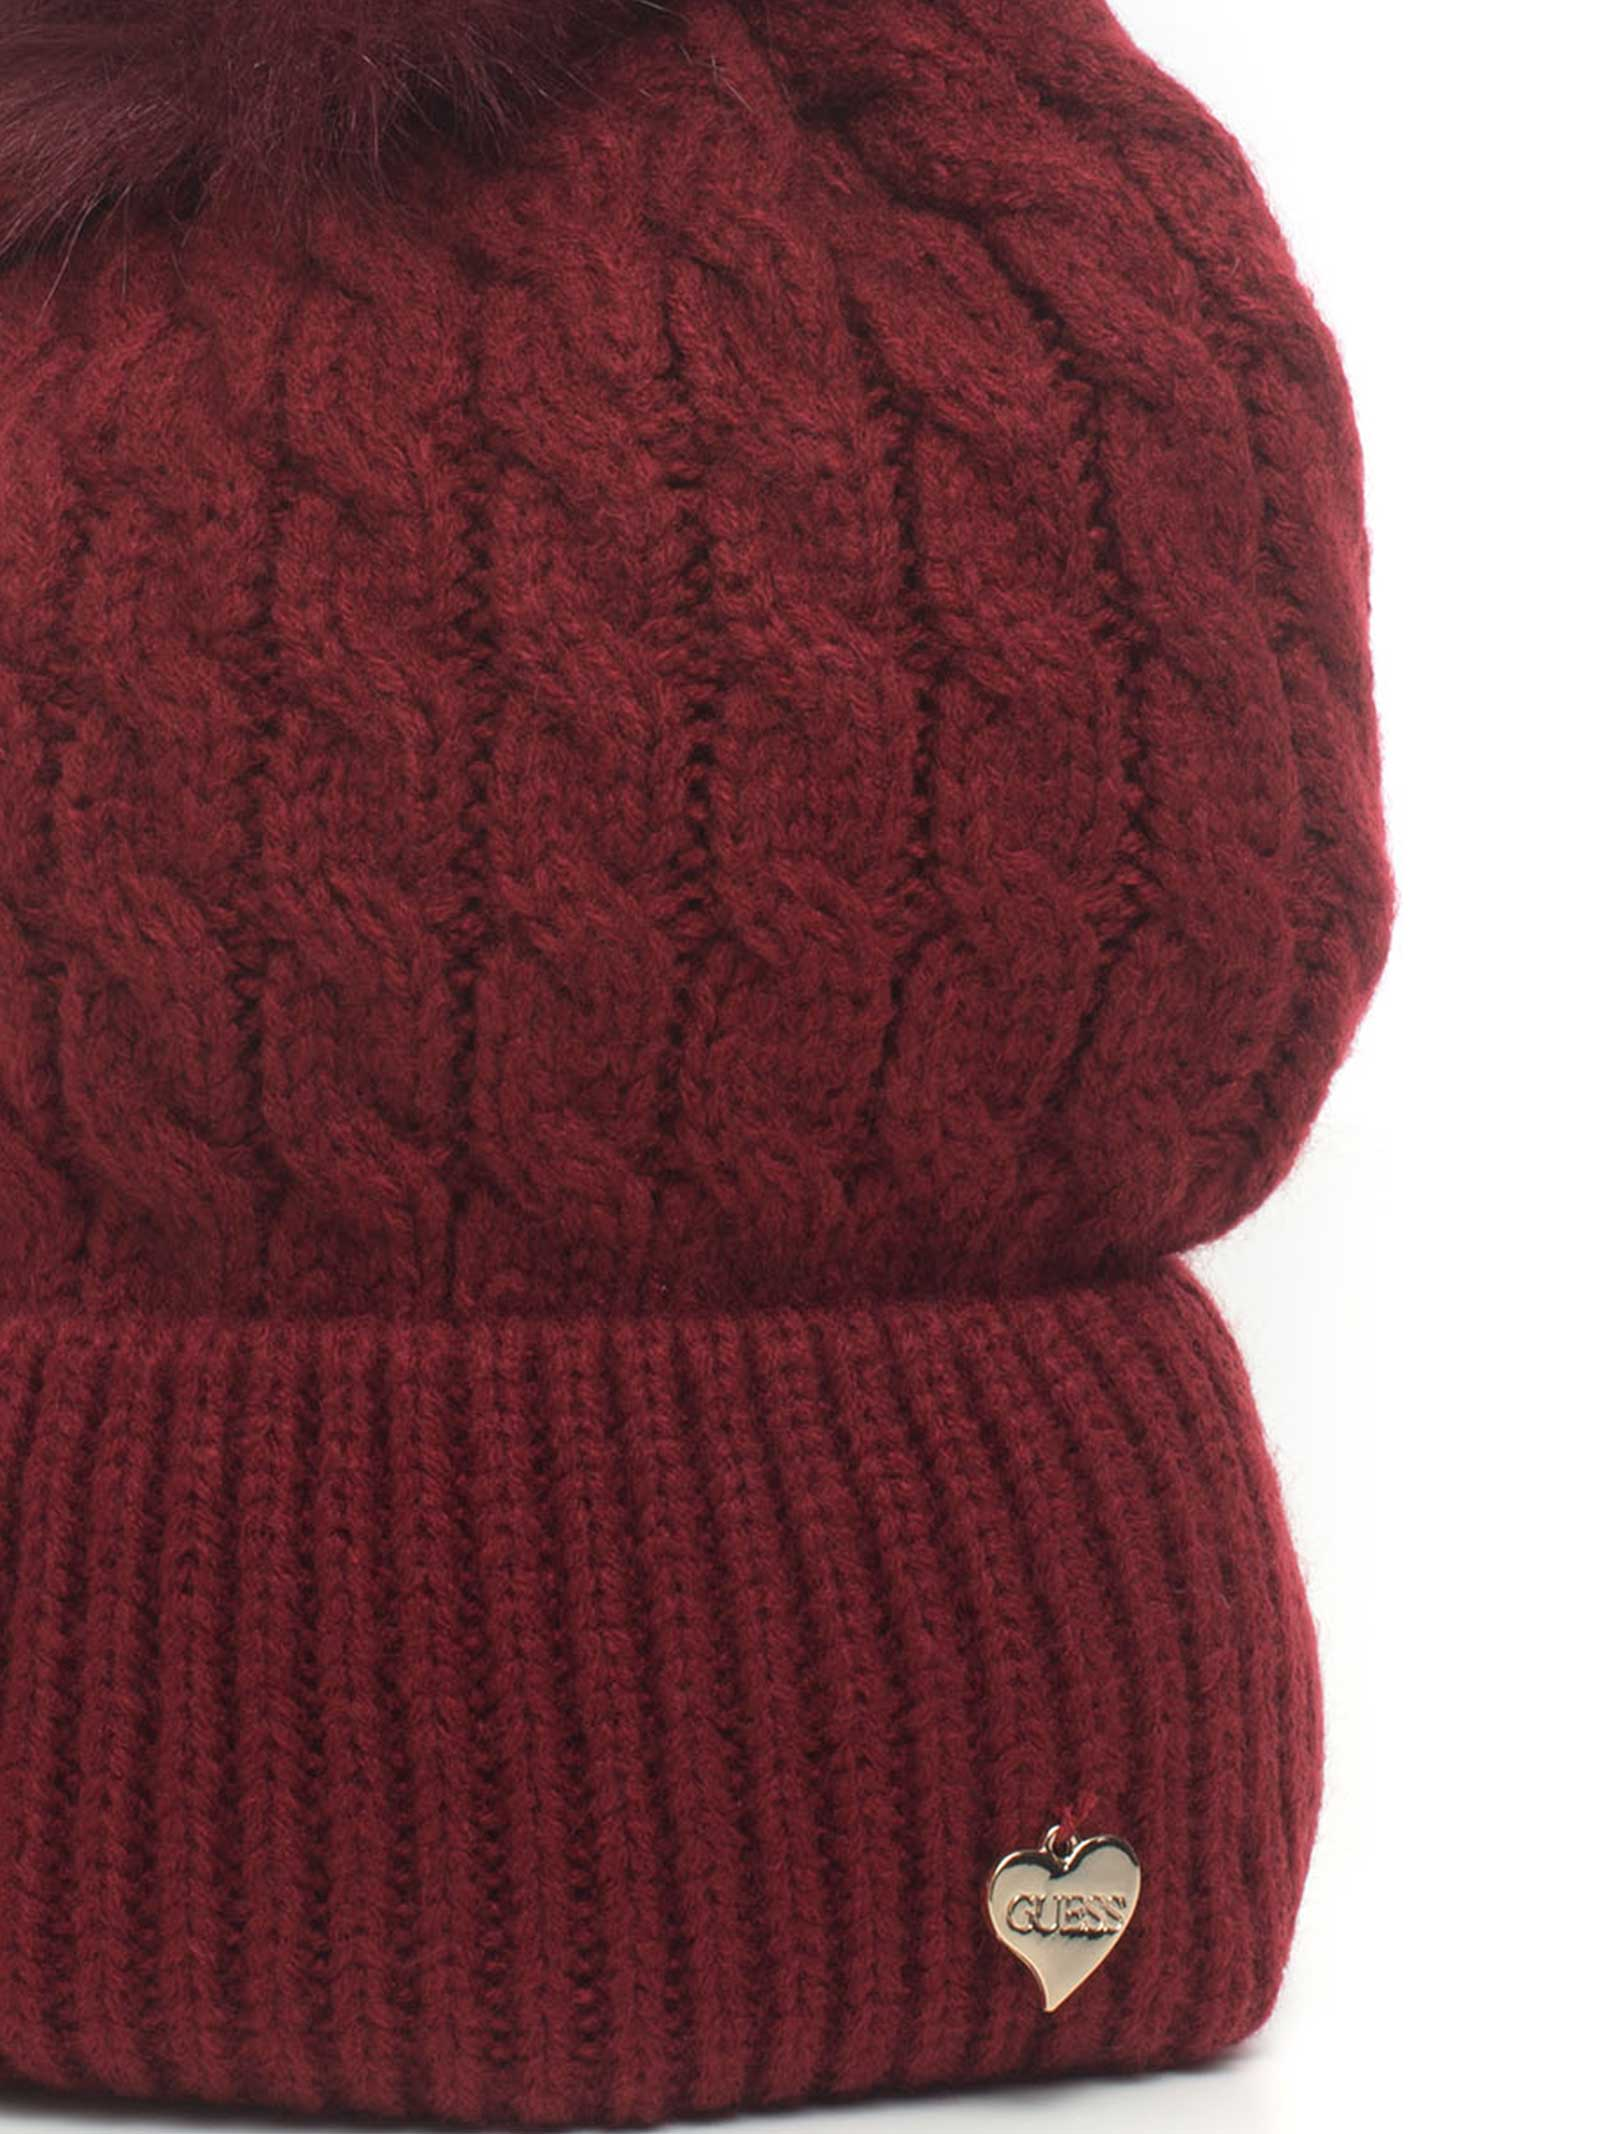 CAPPELLO GUESS GUESS   Cappello   AW8201-WOL01MER